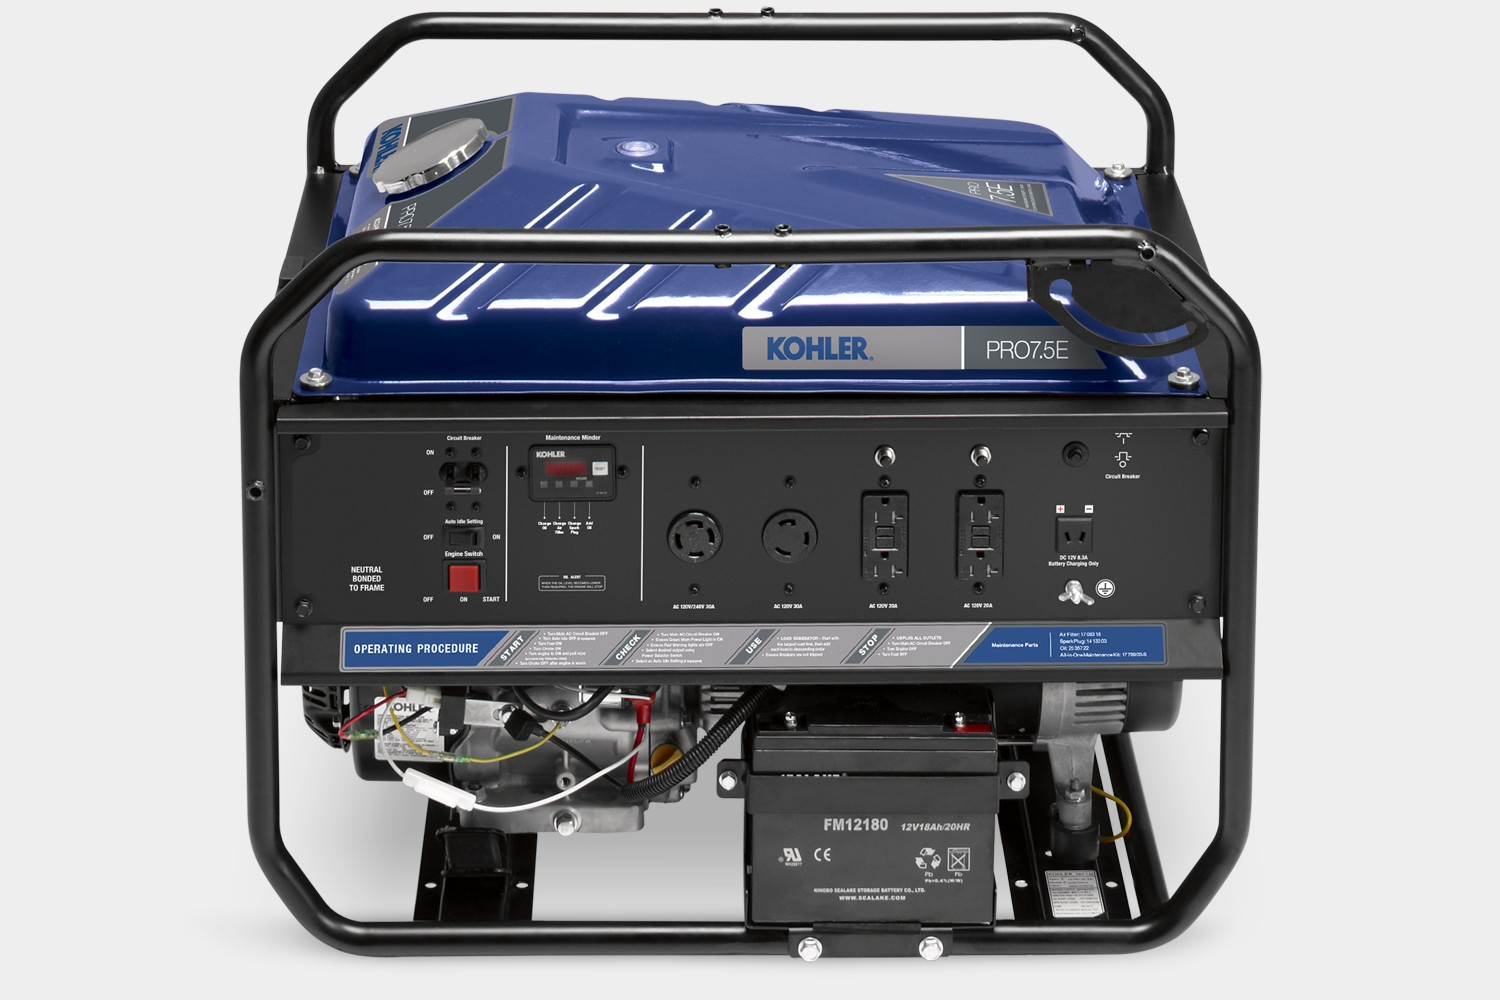 South Shore Generator Sales Service Blog Wareham Ma 5e Kohler Wiring Diagram Pro75e Portable